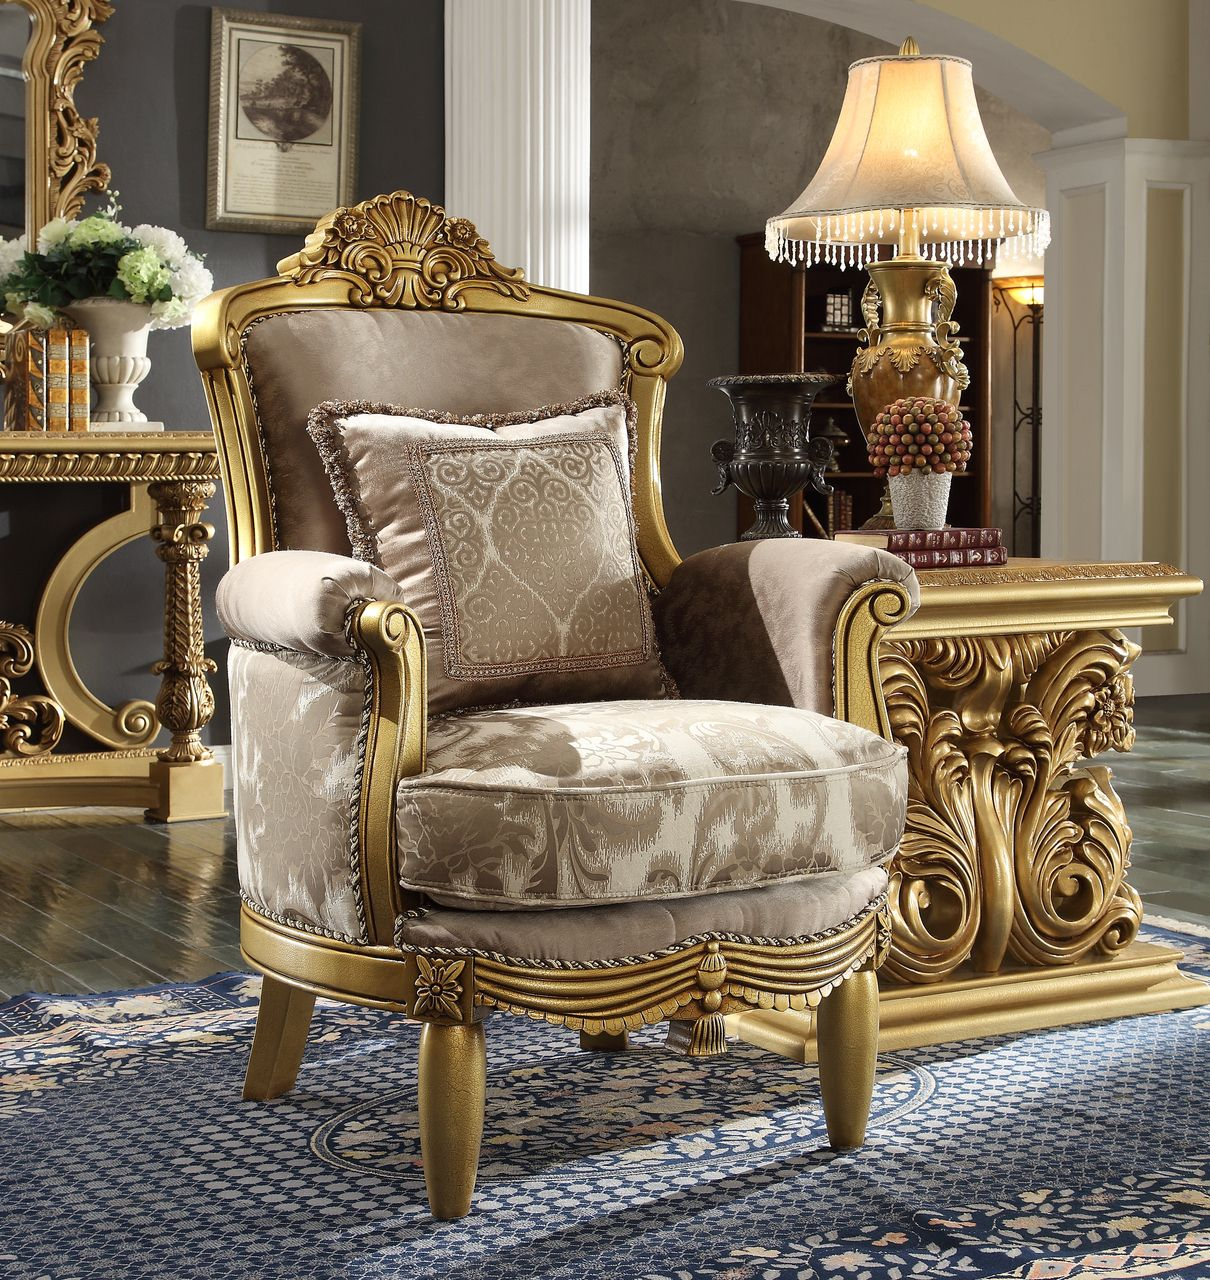 Traditional Victorian HD-1634 Gilded Chair in Beige by Homey Design